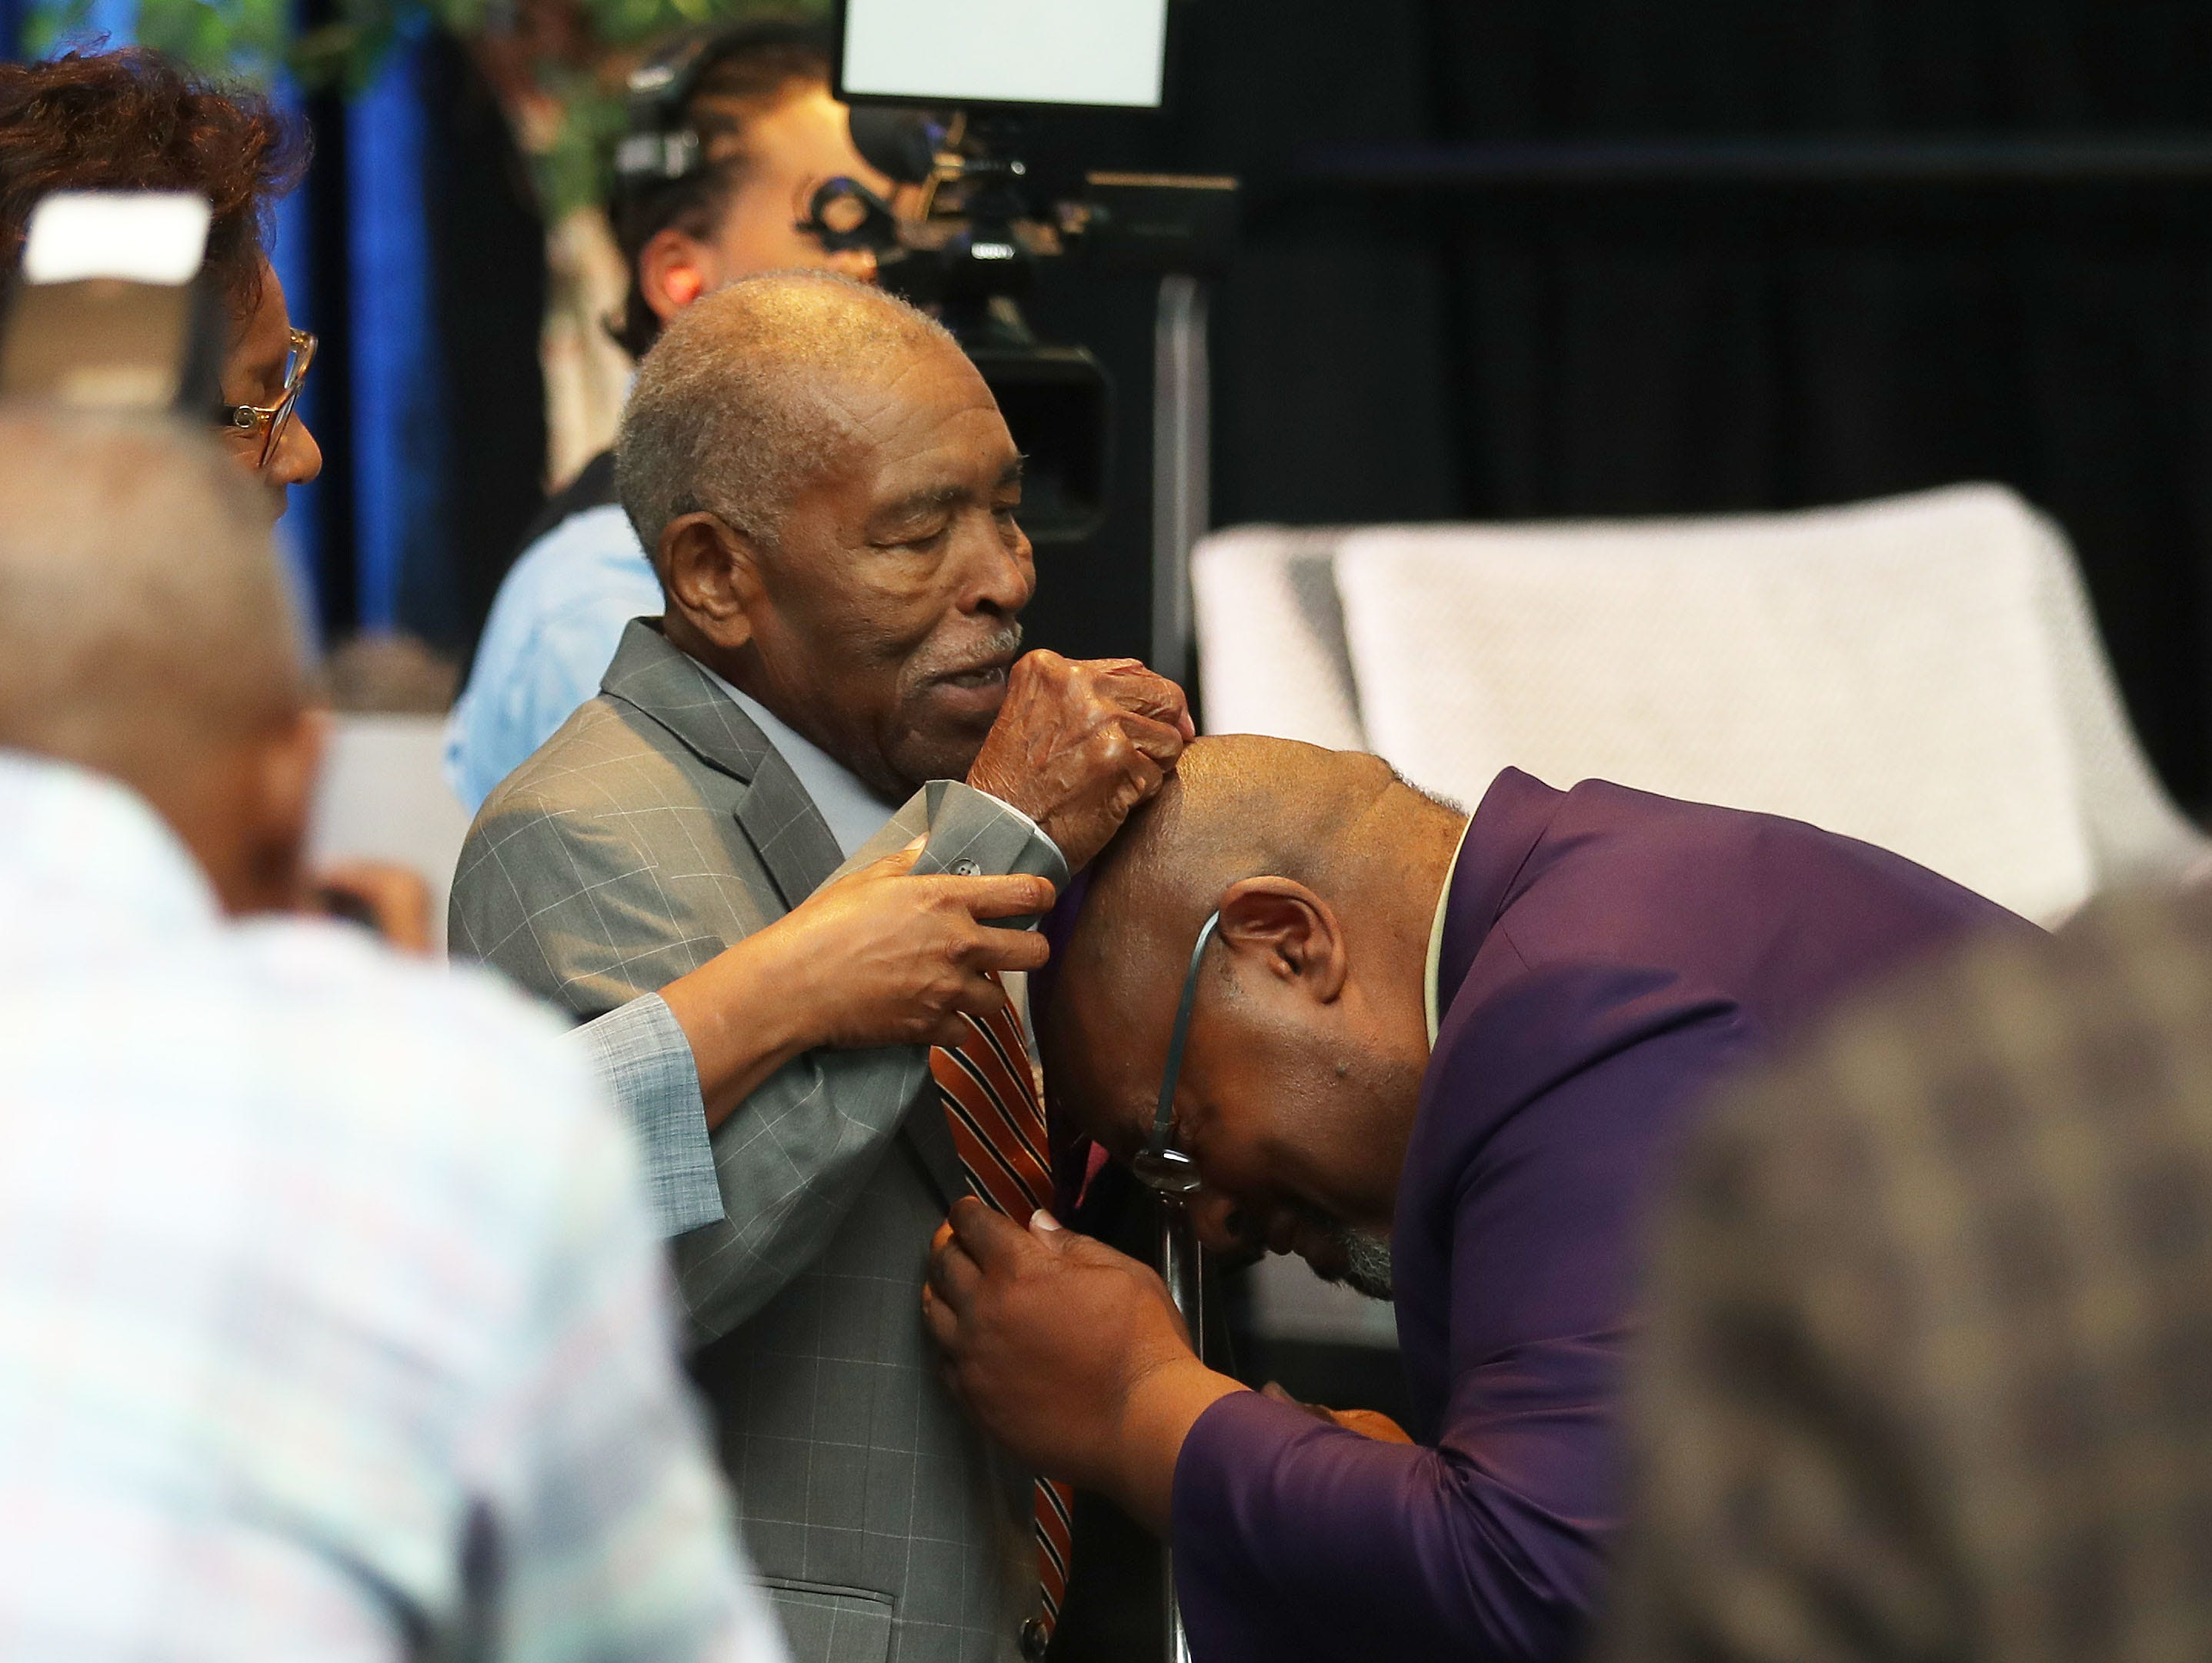 Alvin Hollins, Sr. drapes a medallion over his son, Alvin, Jr. during the MEAC Hall of Fame enshrinement on Wednesday, March 14, 2019 at the Sheraton Norfolk Waterside Hotel in Norfolk, Virginia.